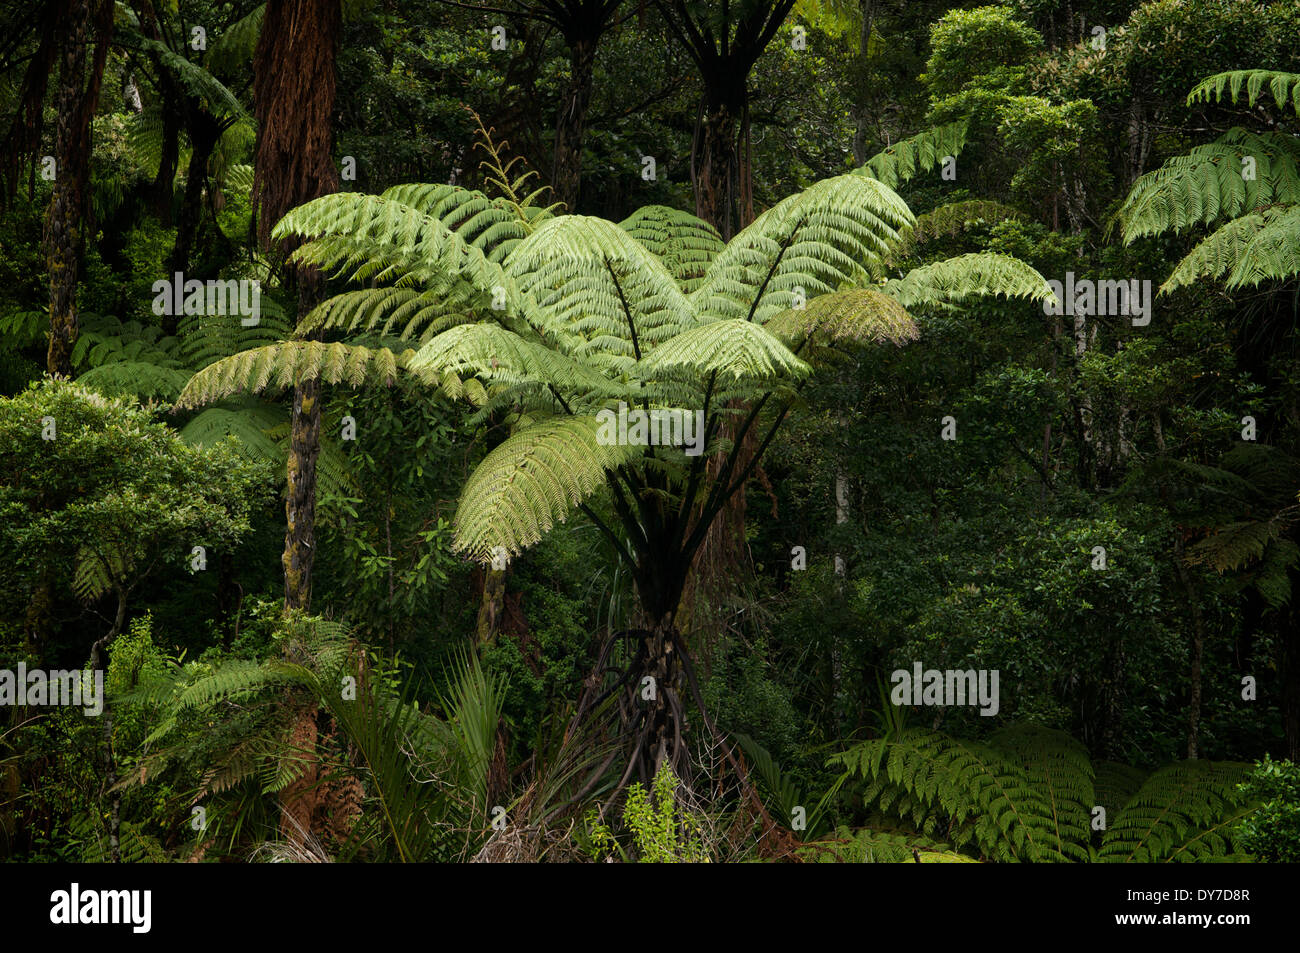 Ponga fern growing in a forest in Whangerei, New Zealand. - Stock Image